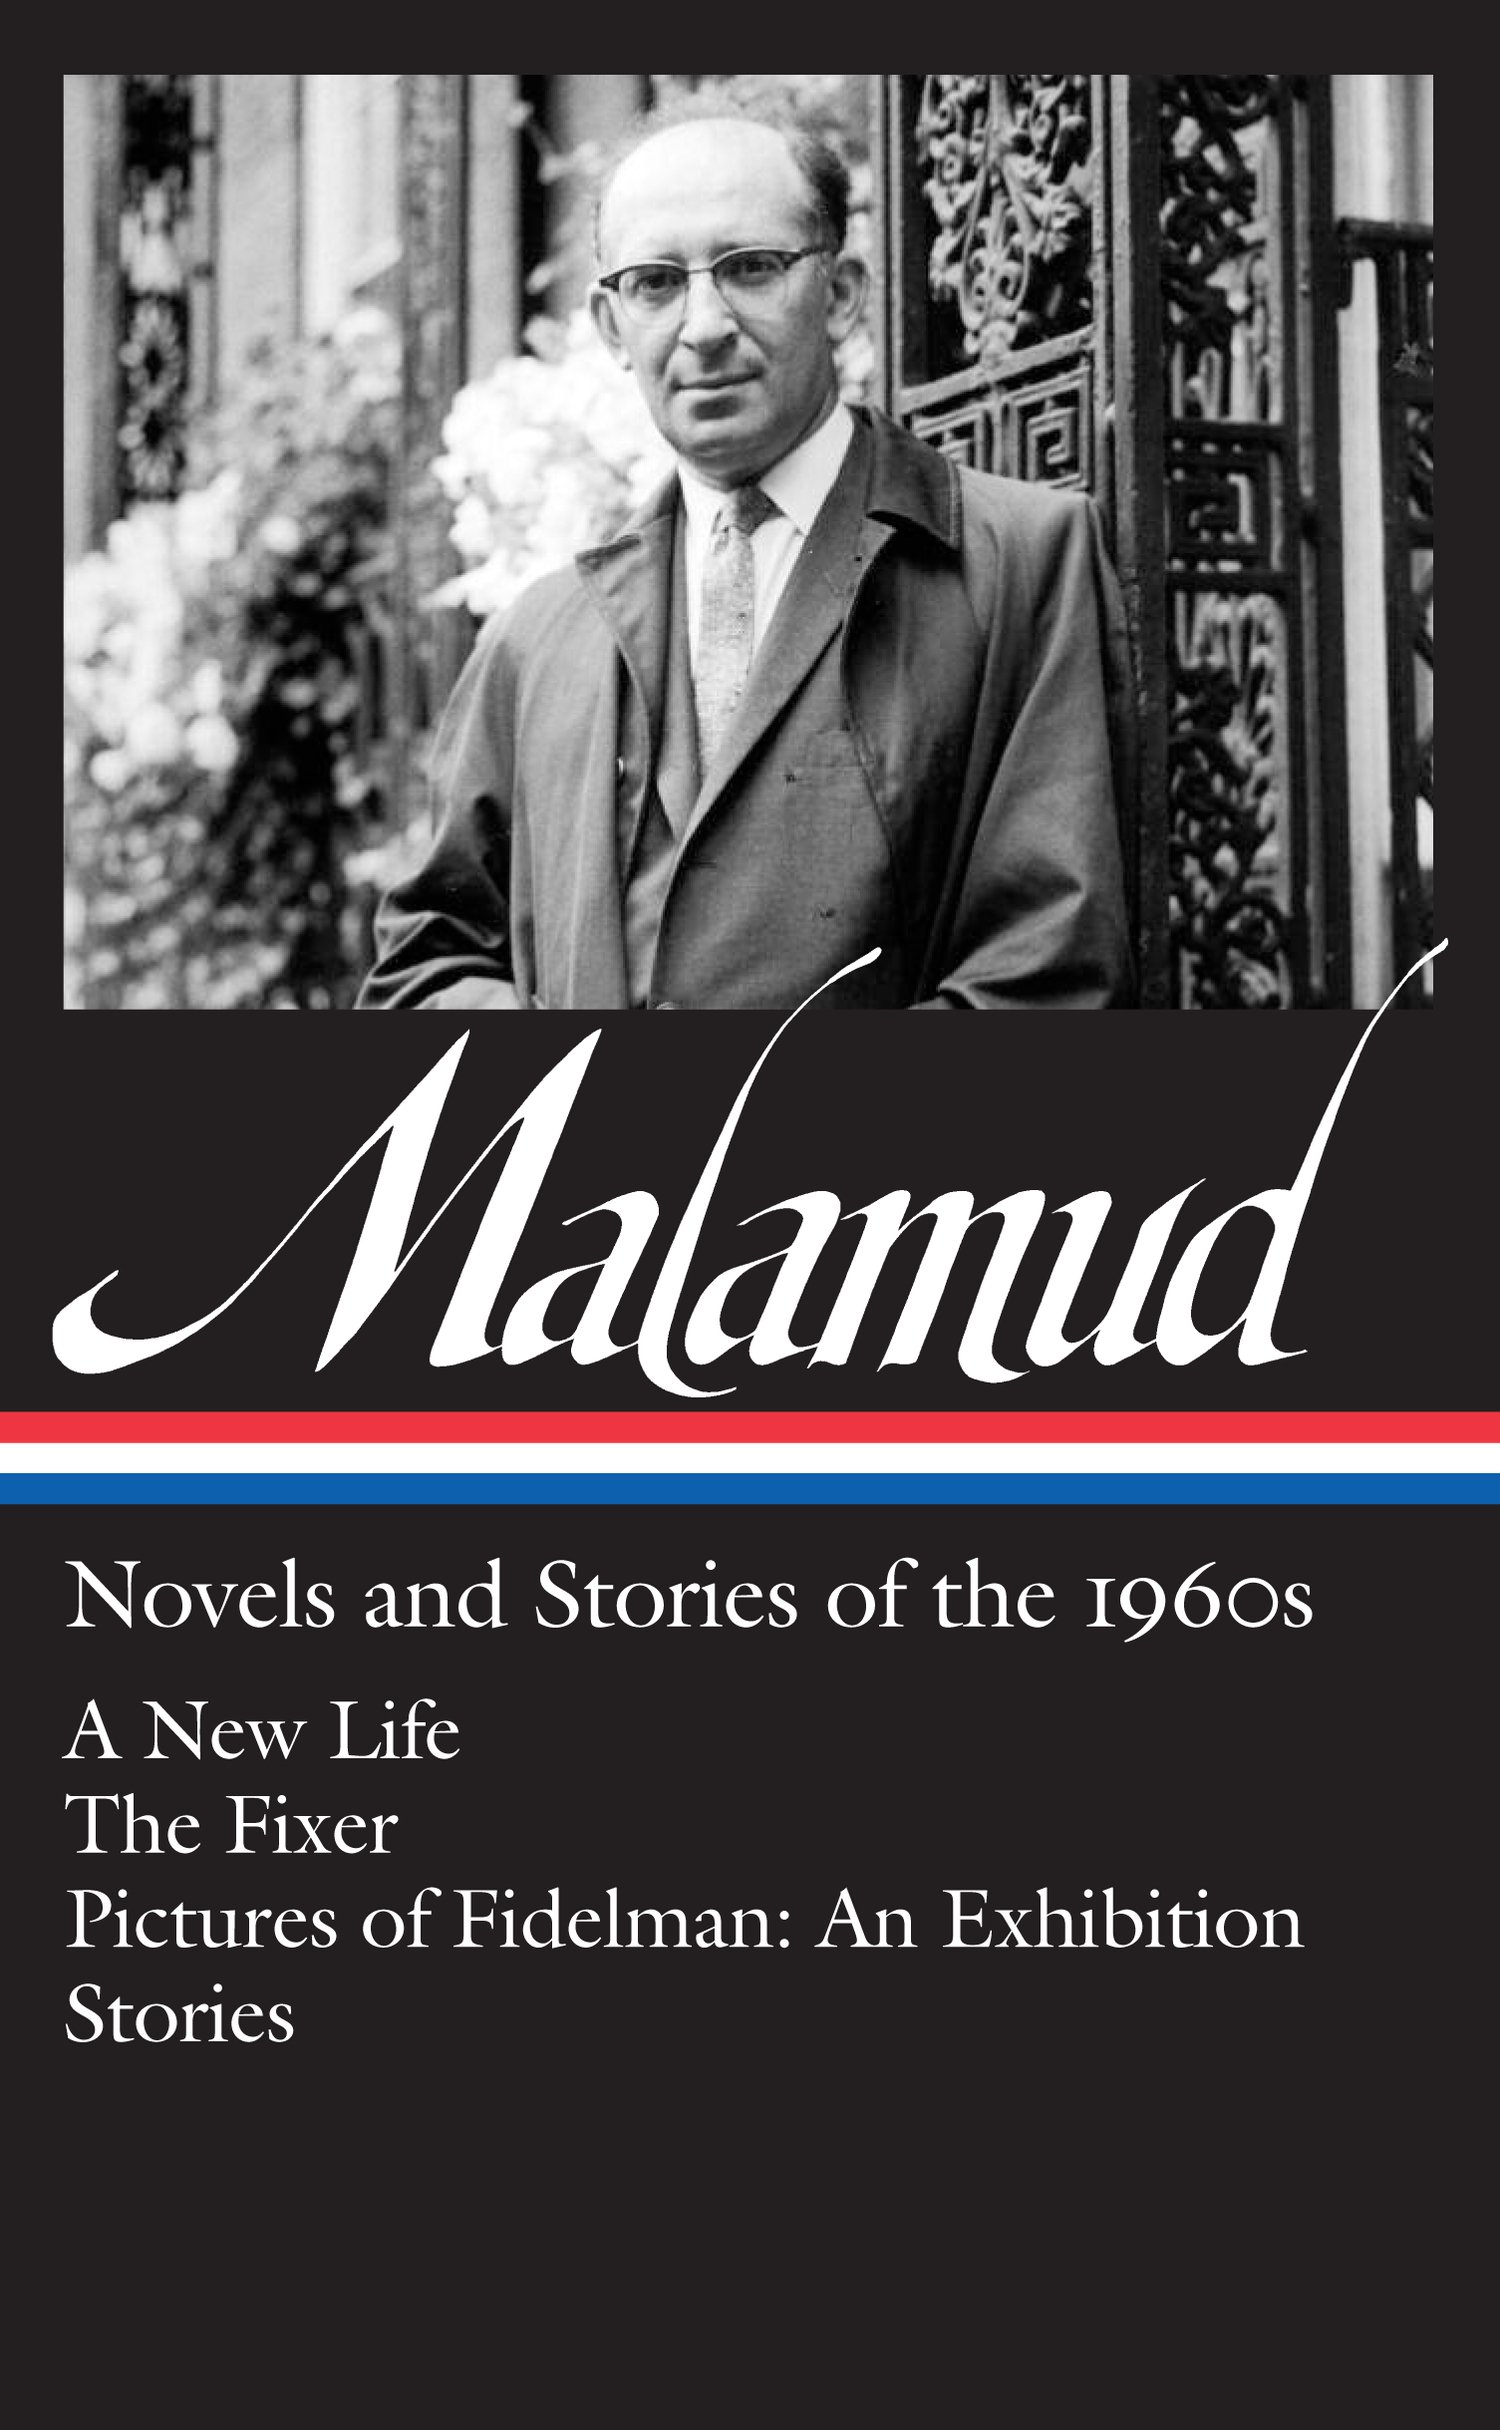 New collections of Bernard Malamud's work released